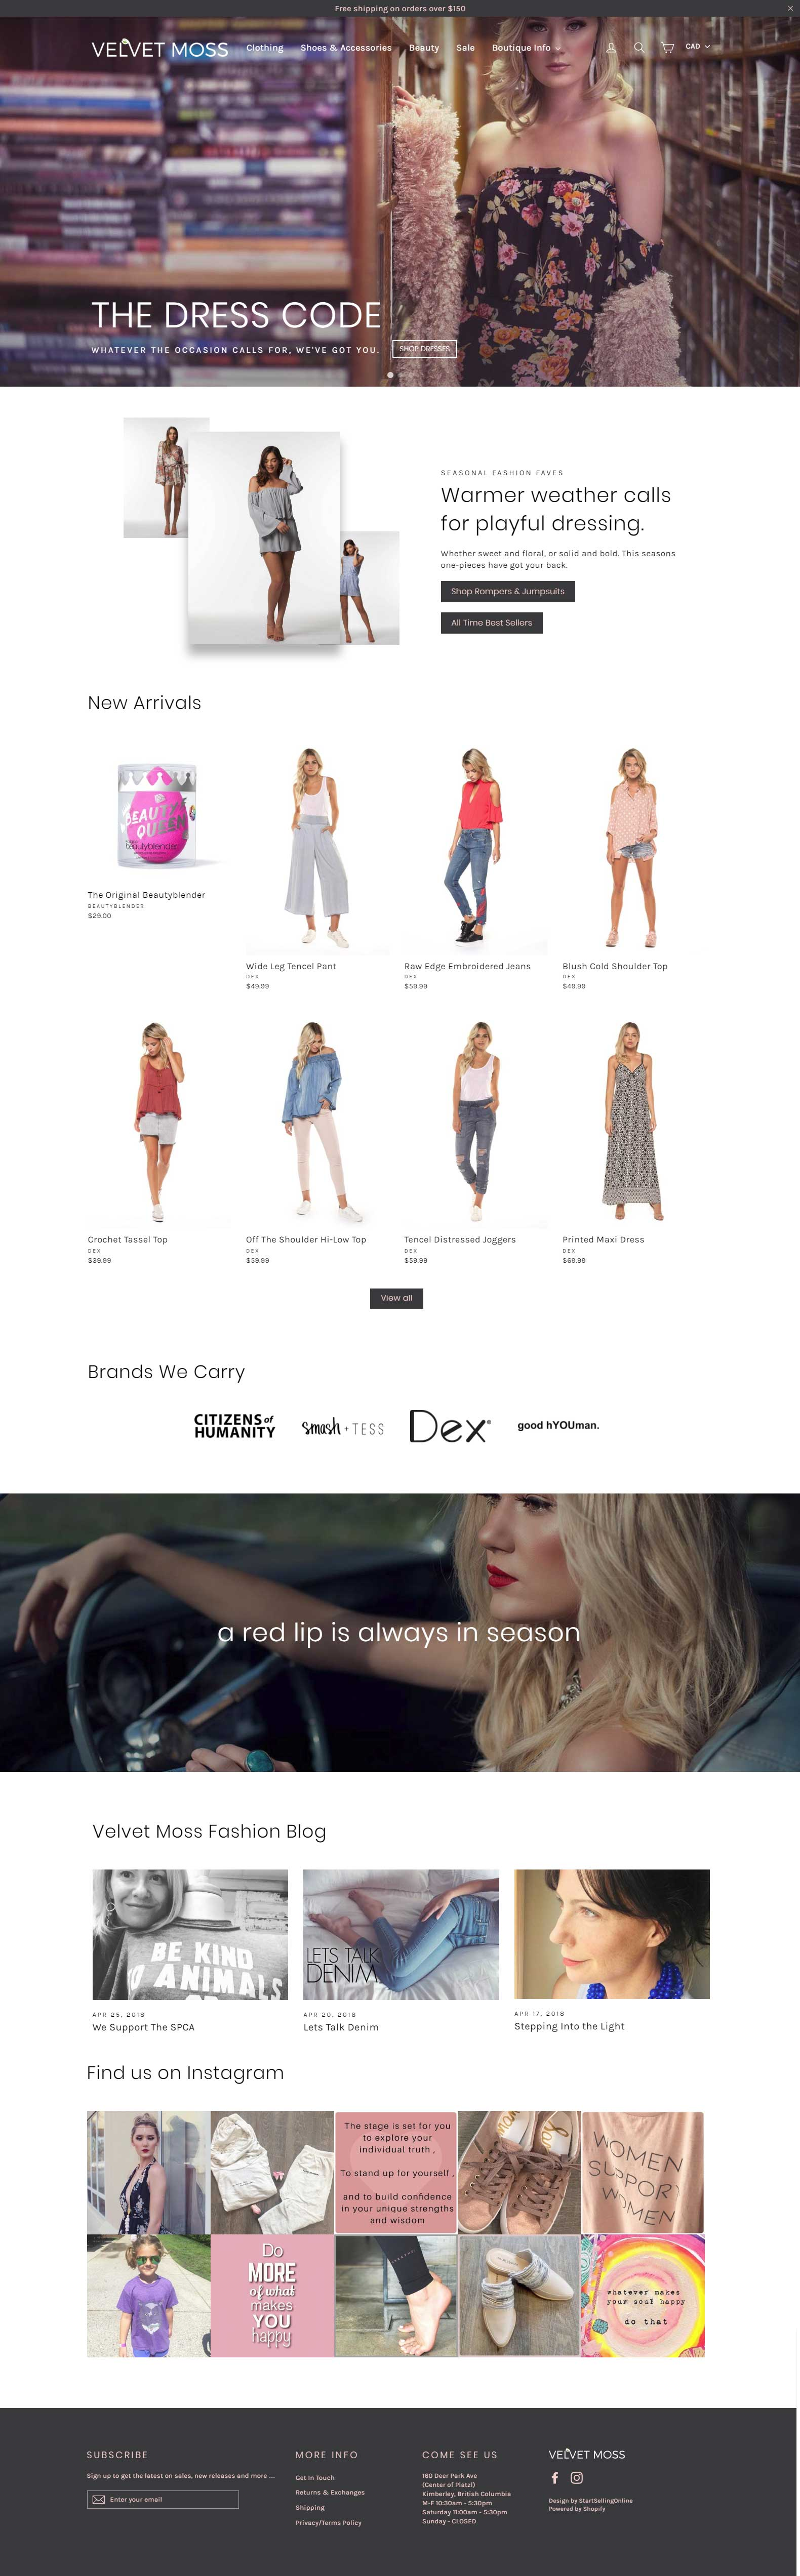 velvet moss website design shopify